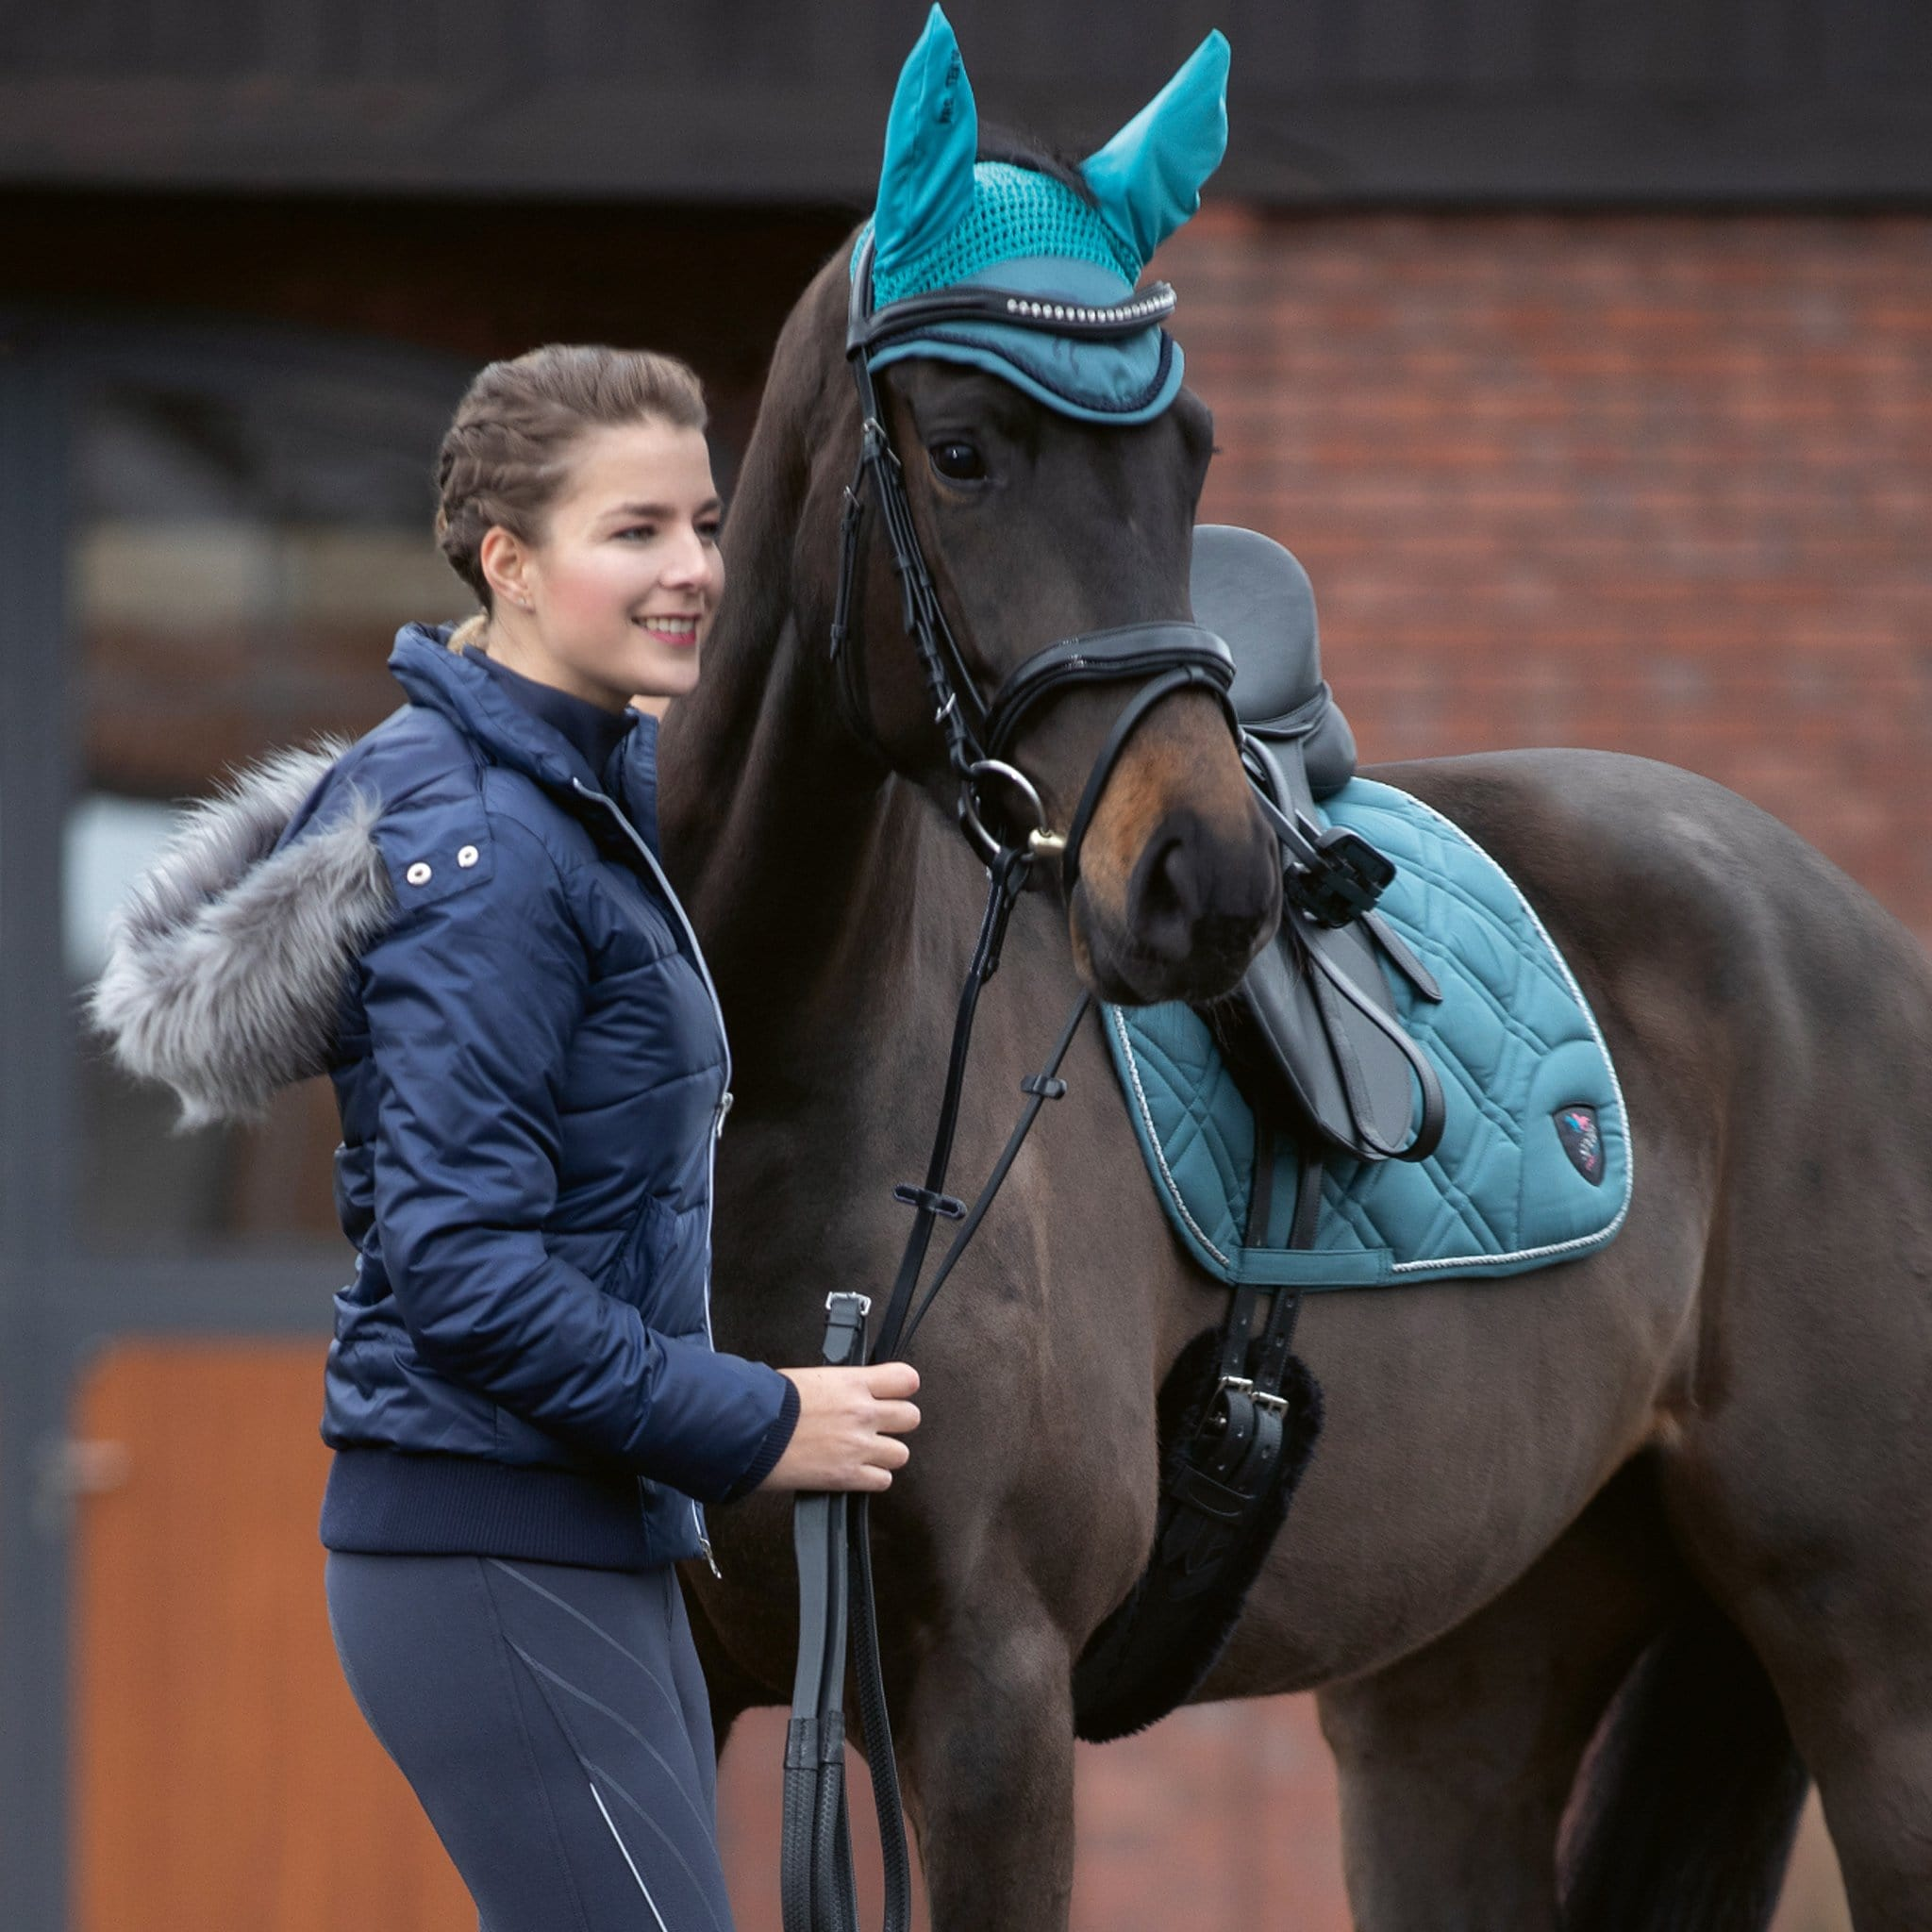 HKM Speed Quilted Jacket On Model With Horse 11099.